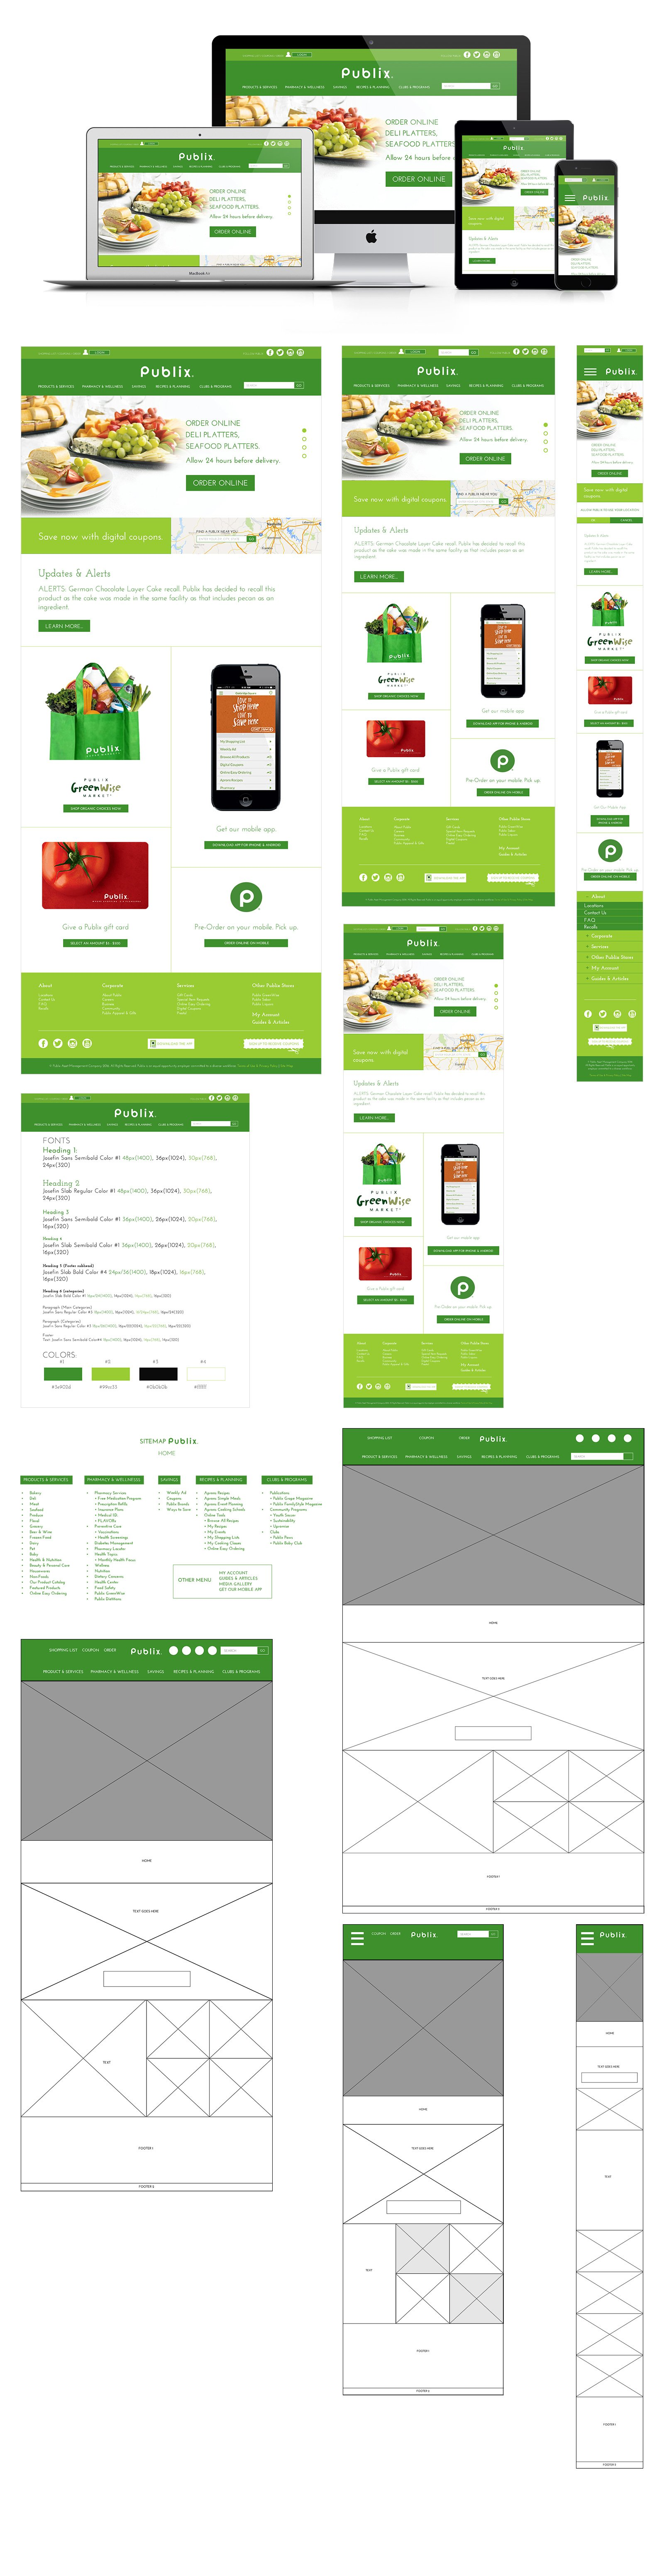 Publix Responsive Website Redesign Mock Project